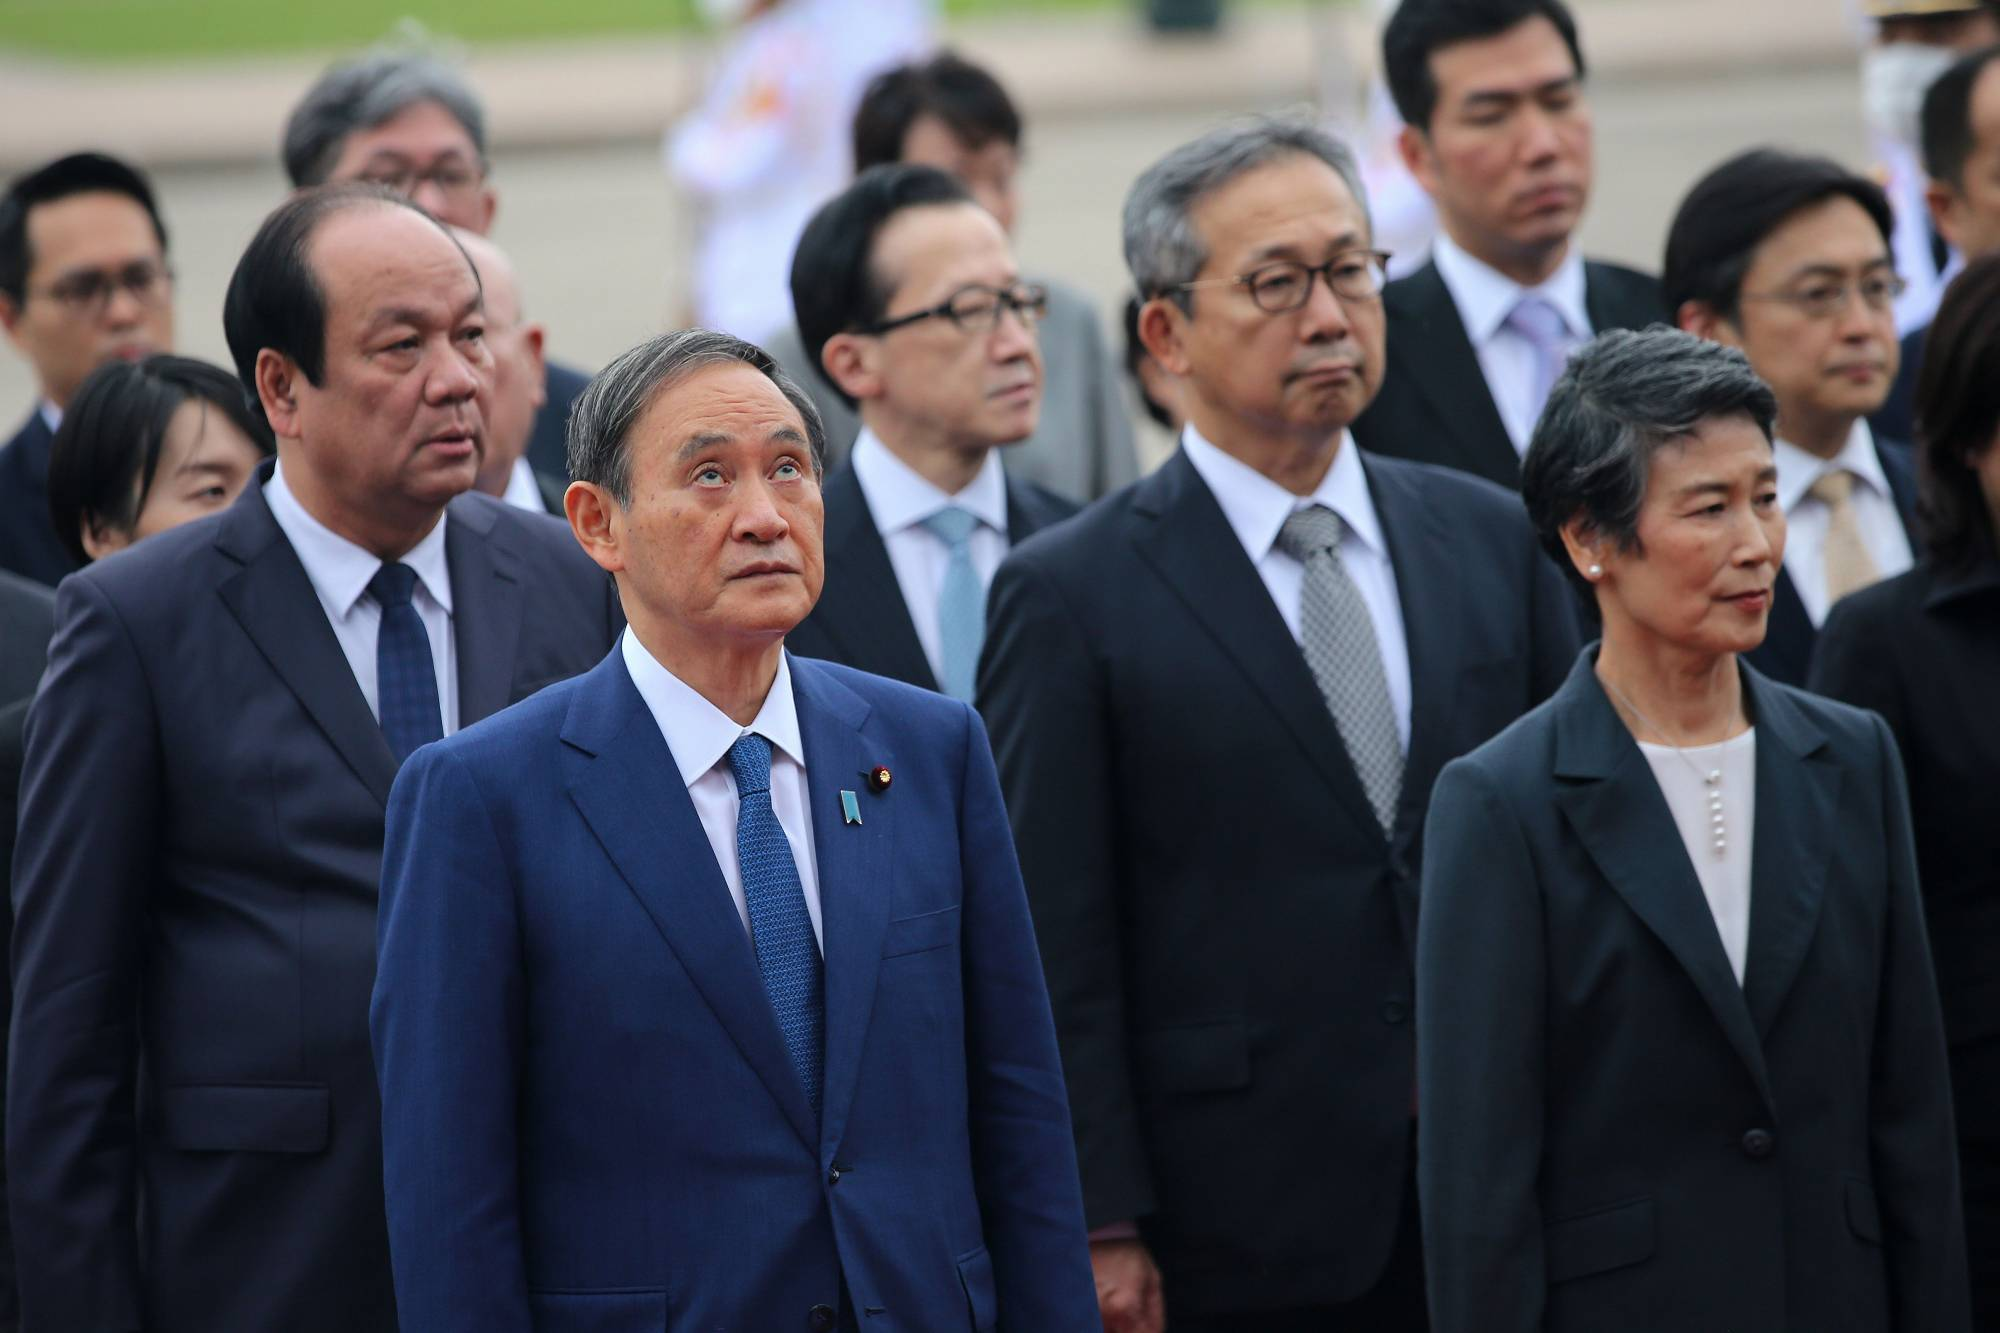 New Prime Minister Yoshihide Suga should have known that the average Japanese couldn't care less about the science council's members. Quiet approval of the recommended nominees would have been in line with precedent and avoided a silly public fight. | POOL / VIA AFP-JIJI